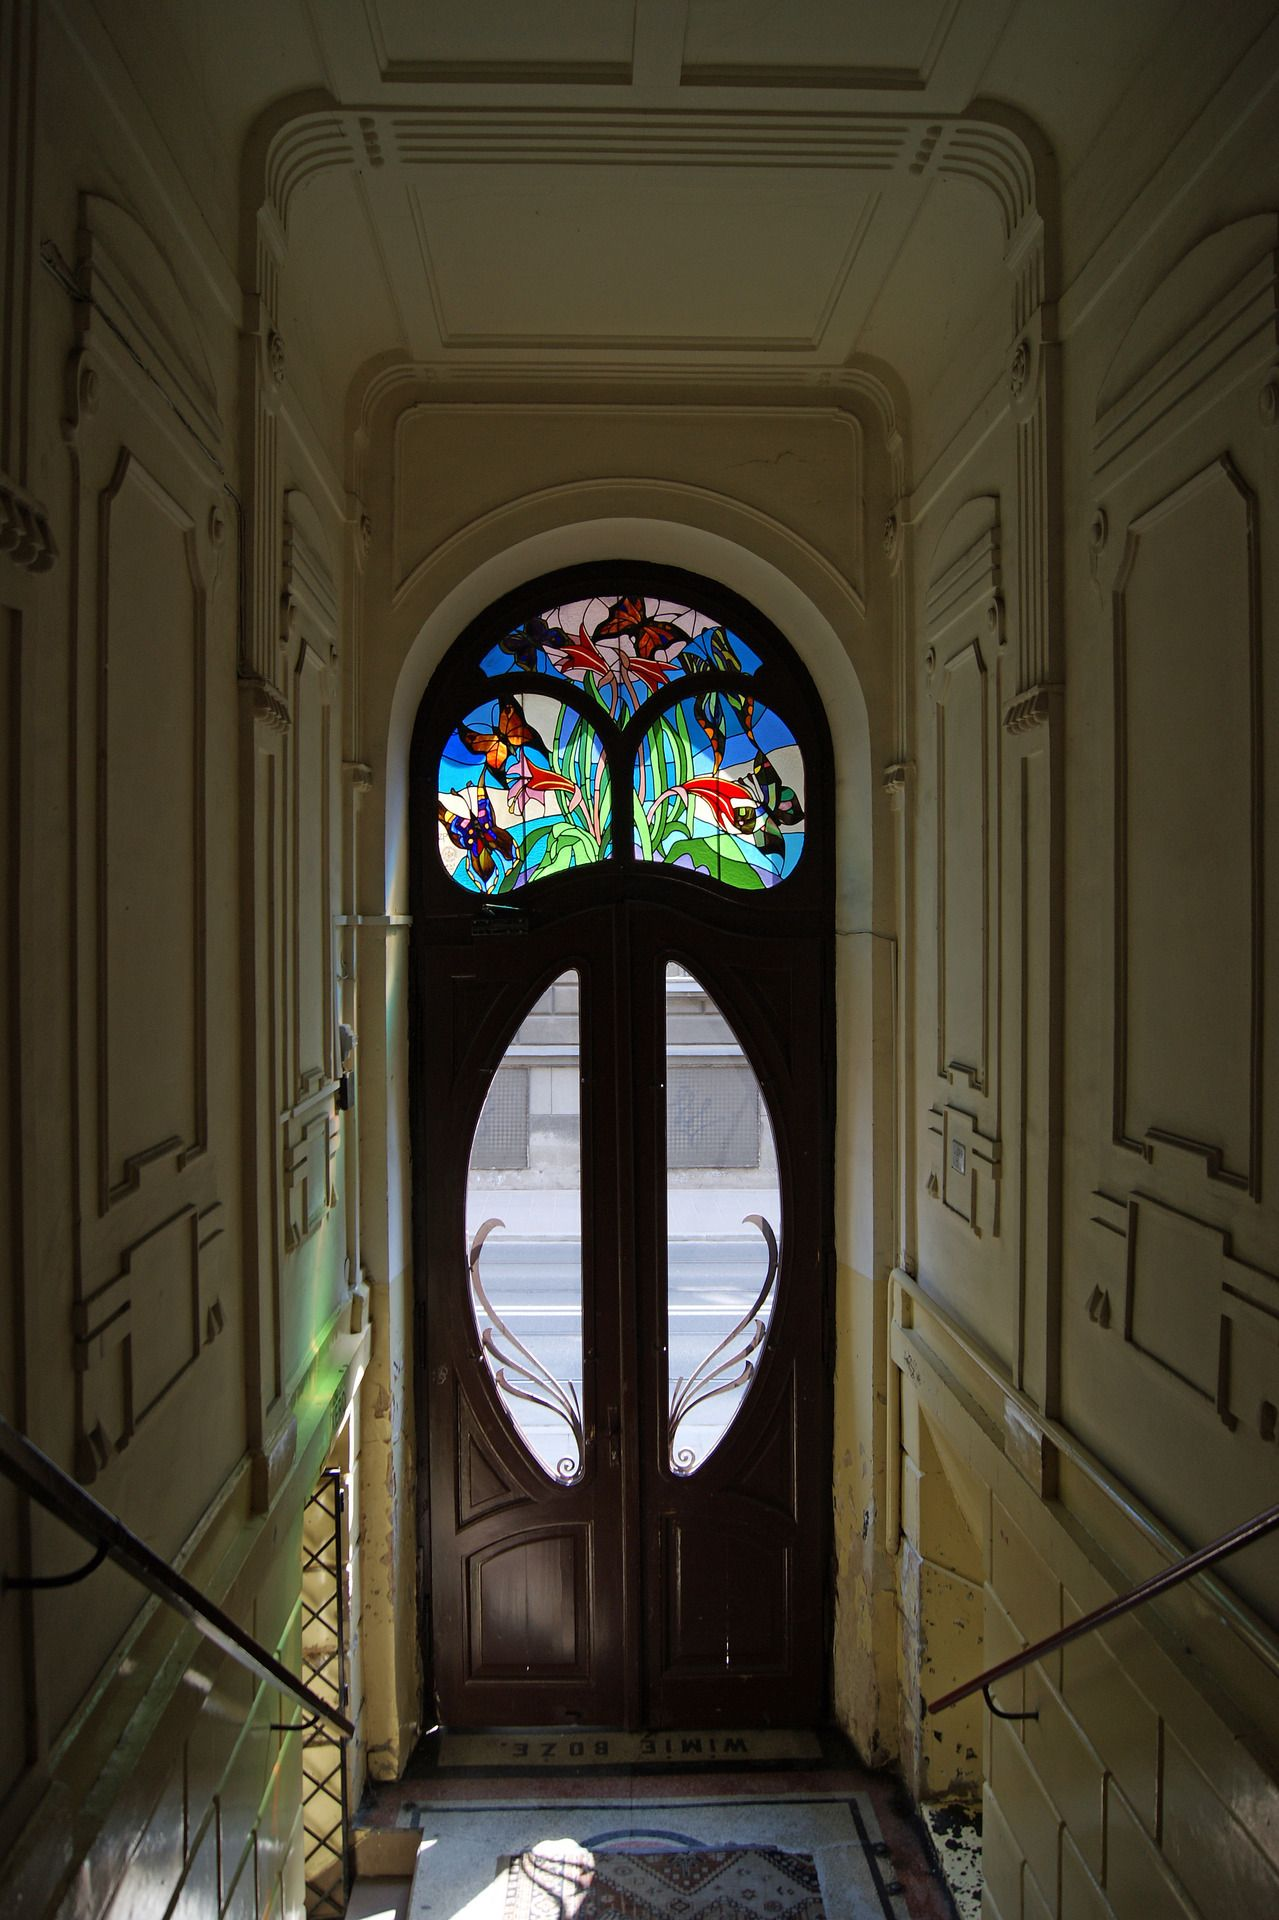 Art Nouveau Architecture in Krakow, Poland: Tenement door with stained glass, 1906